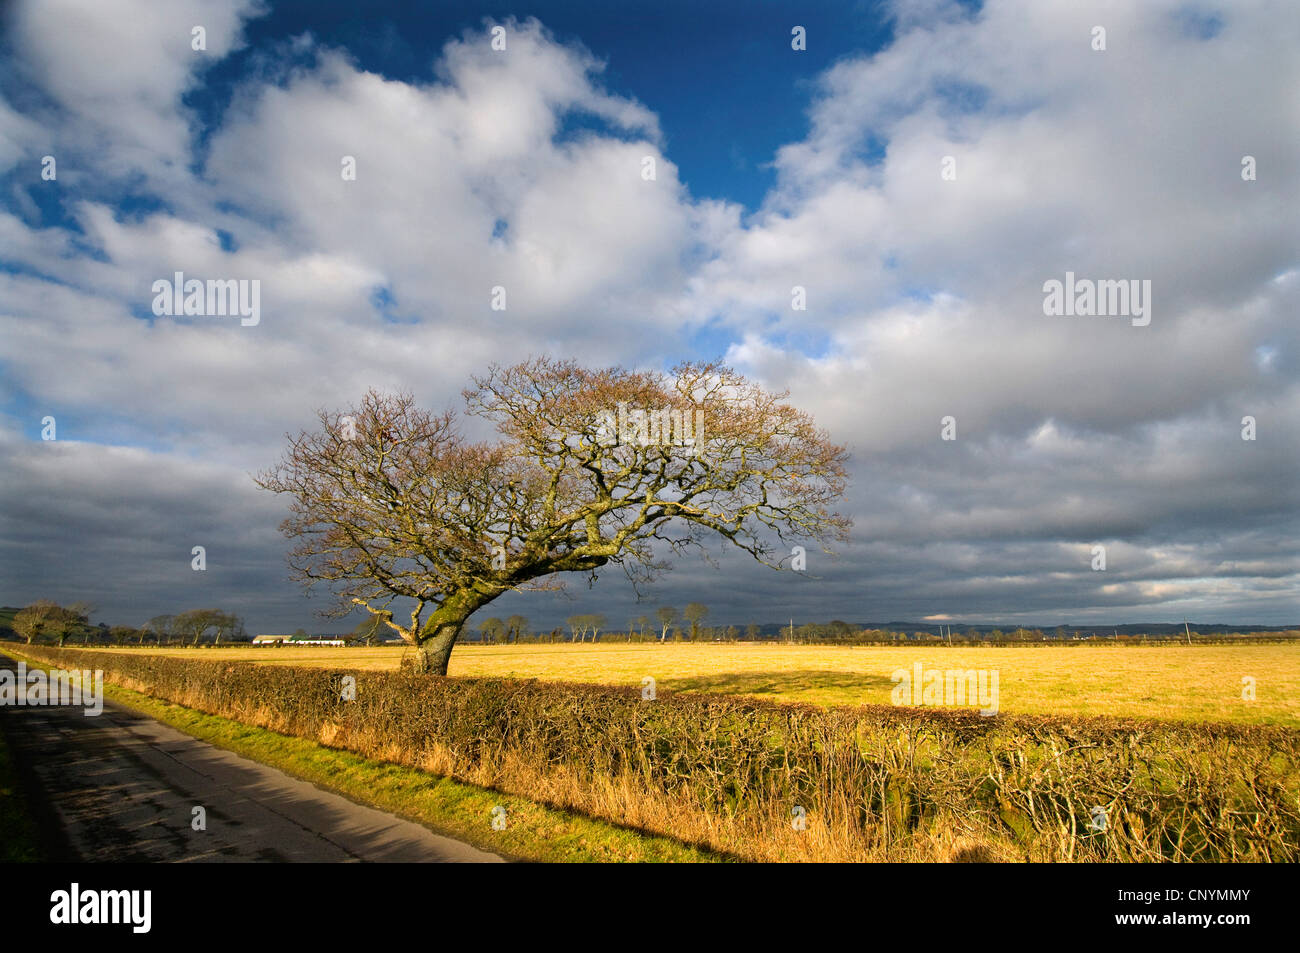 single tree at an approach to the WWT Caerlaverock at Solway Firth, United Kingdom, Scotland, Caerlaverock NNR - Stock Image